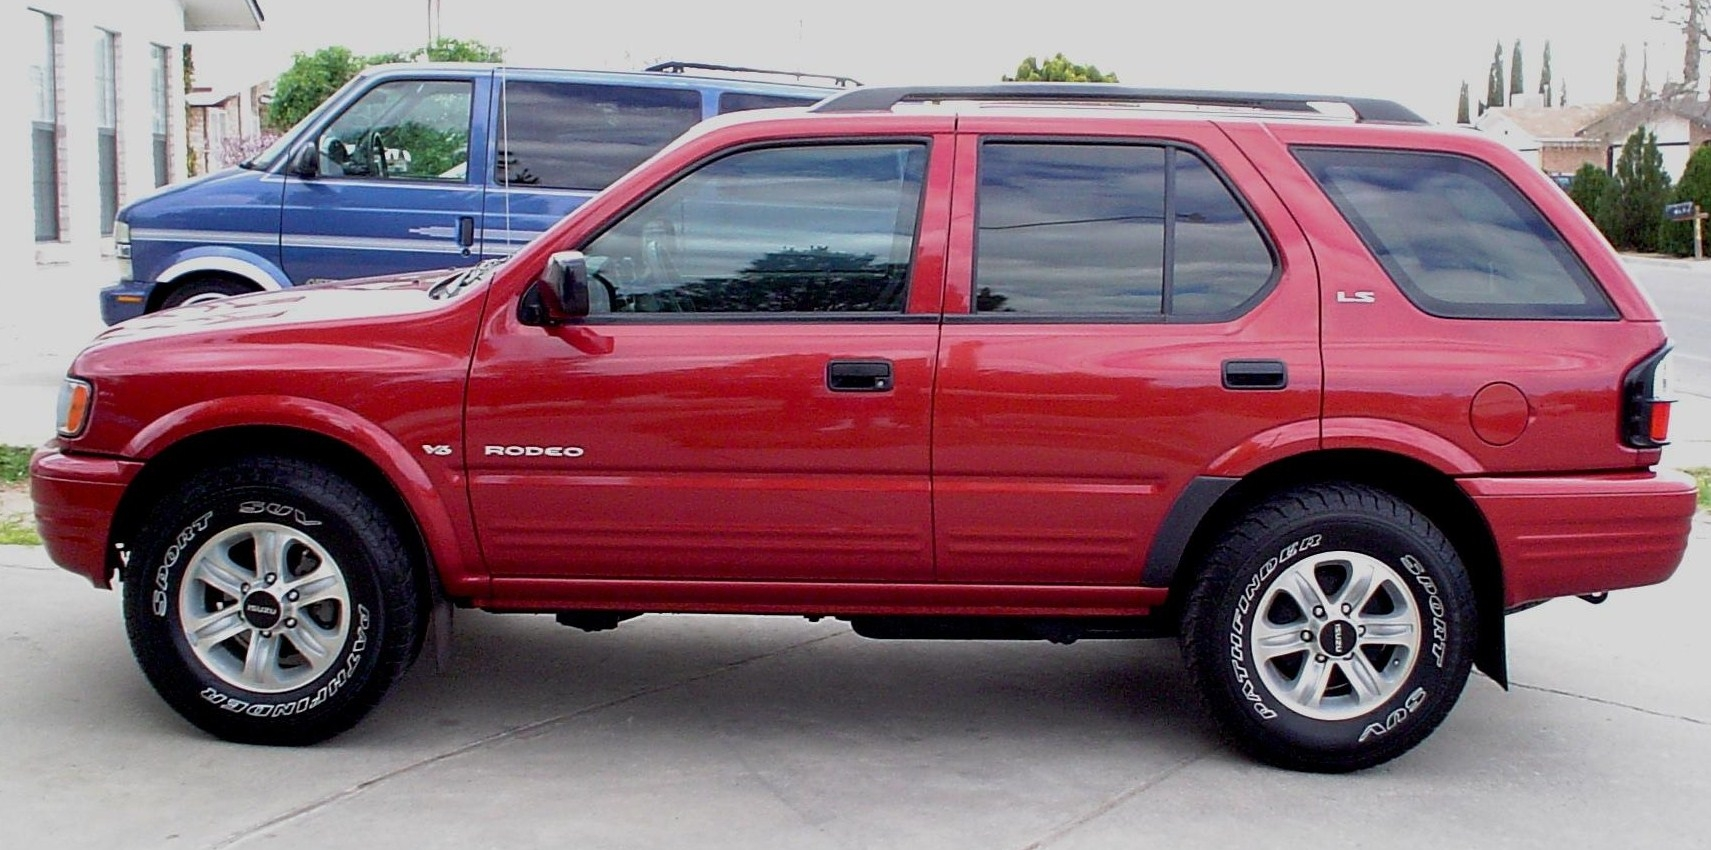 Isuzu Rodeo #3